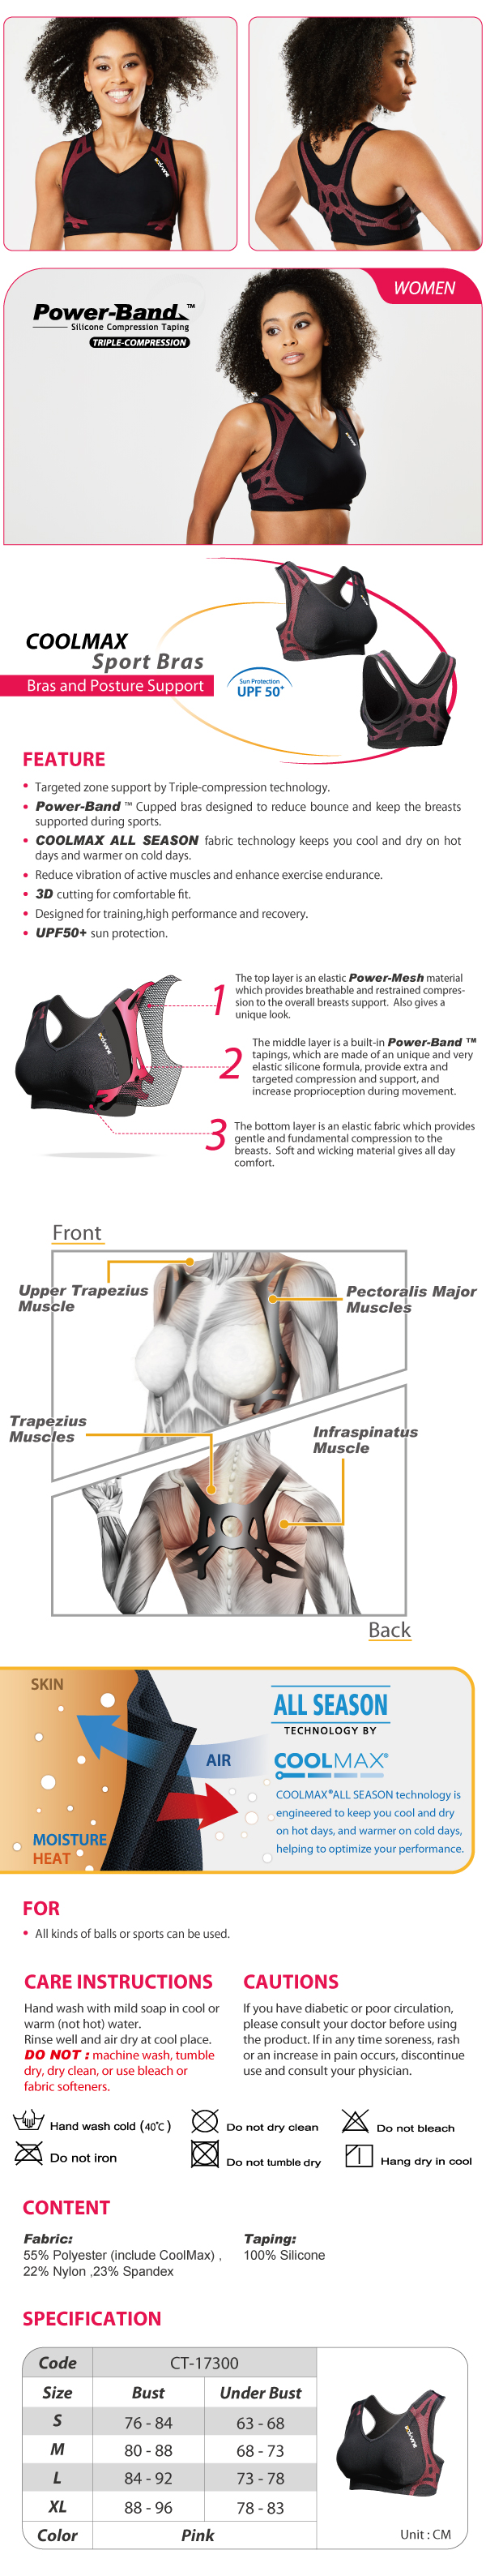 CT-17300-SportBras/en/BodyVine-CoolMax-Compression-SPort-Bras-and-Posture-Support